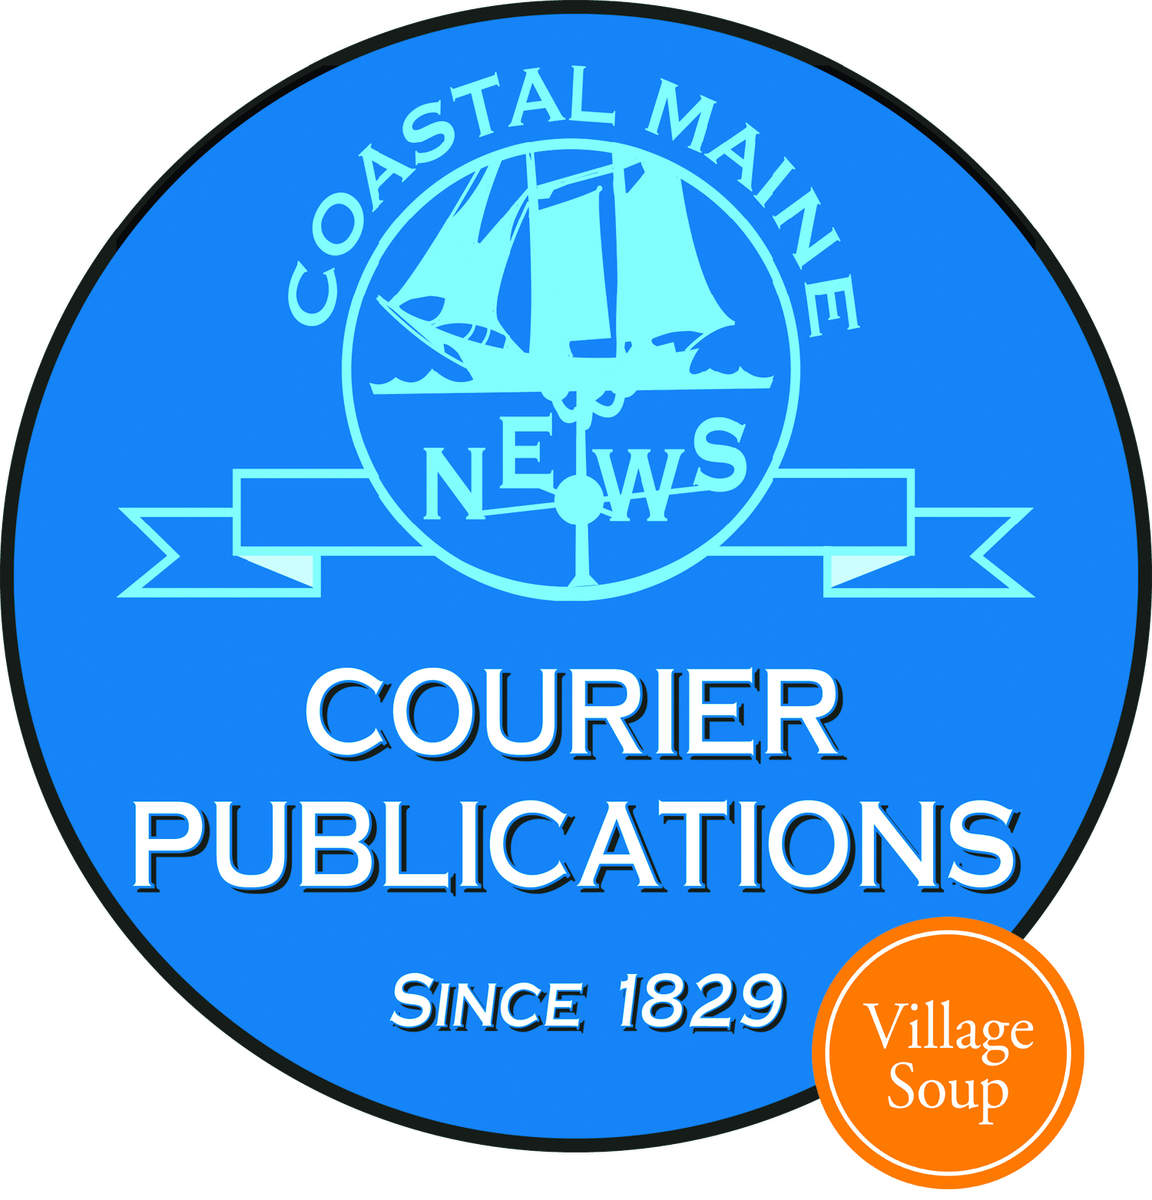 Courier Publications